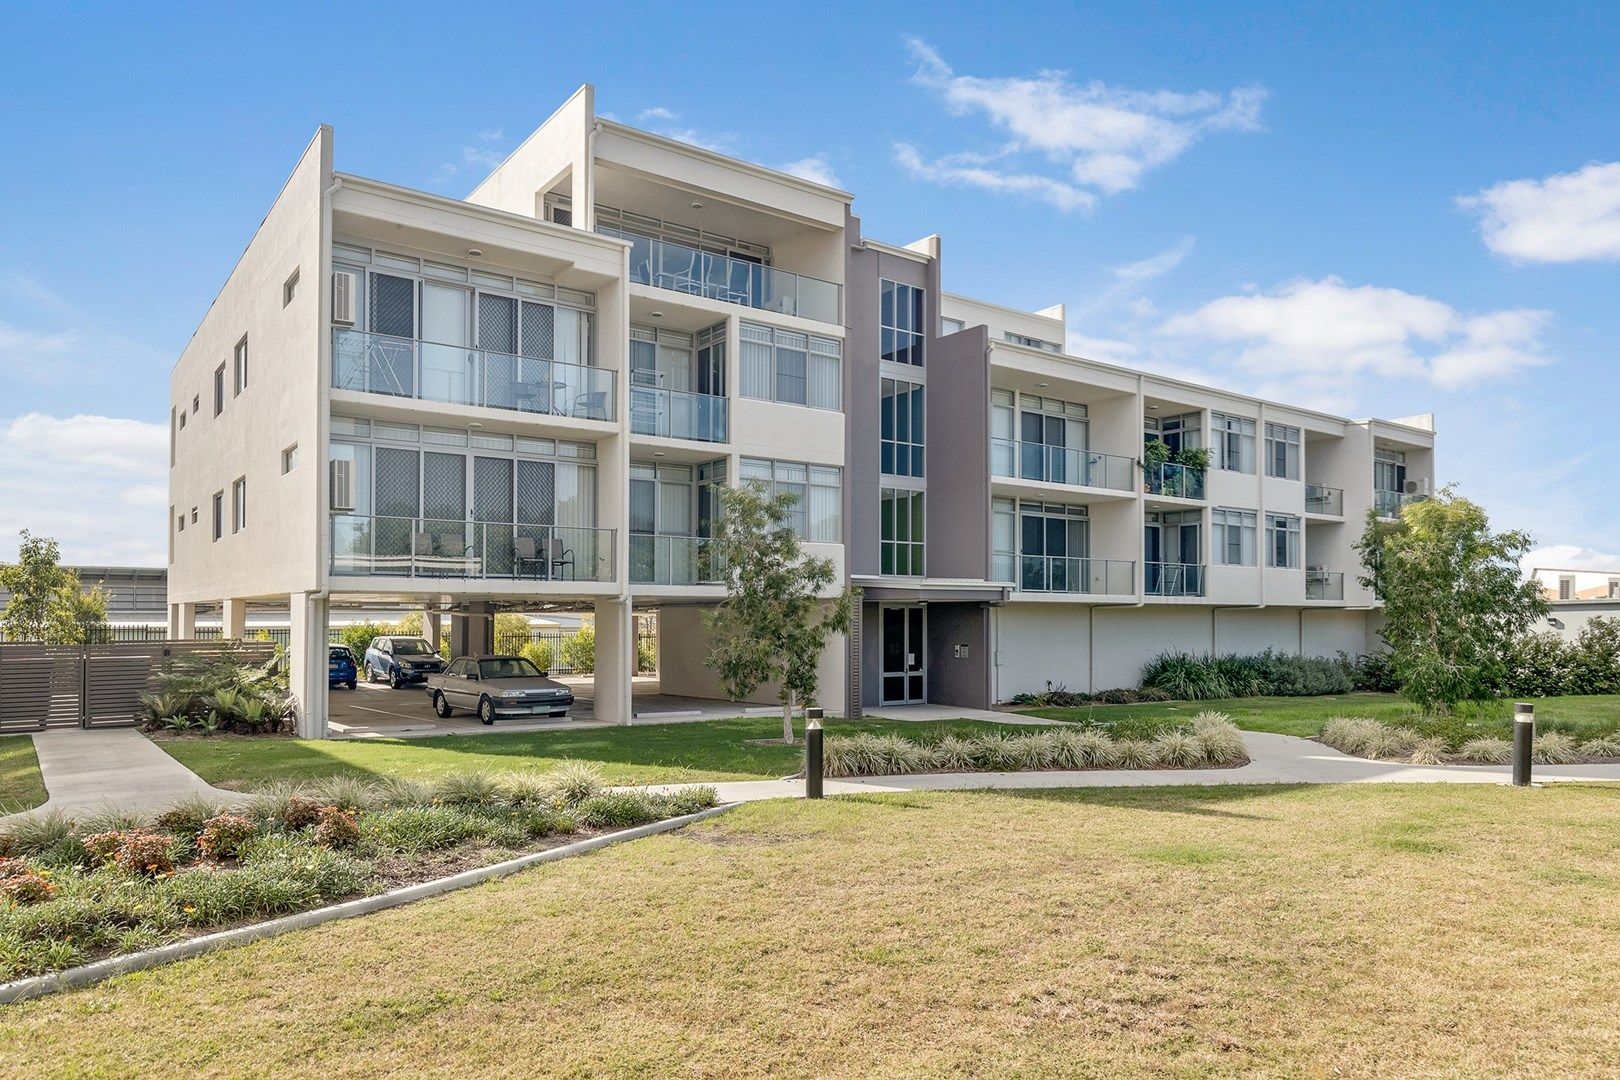 53/3 Mclennan Court, North Lakes QLD 4509, Image 0